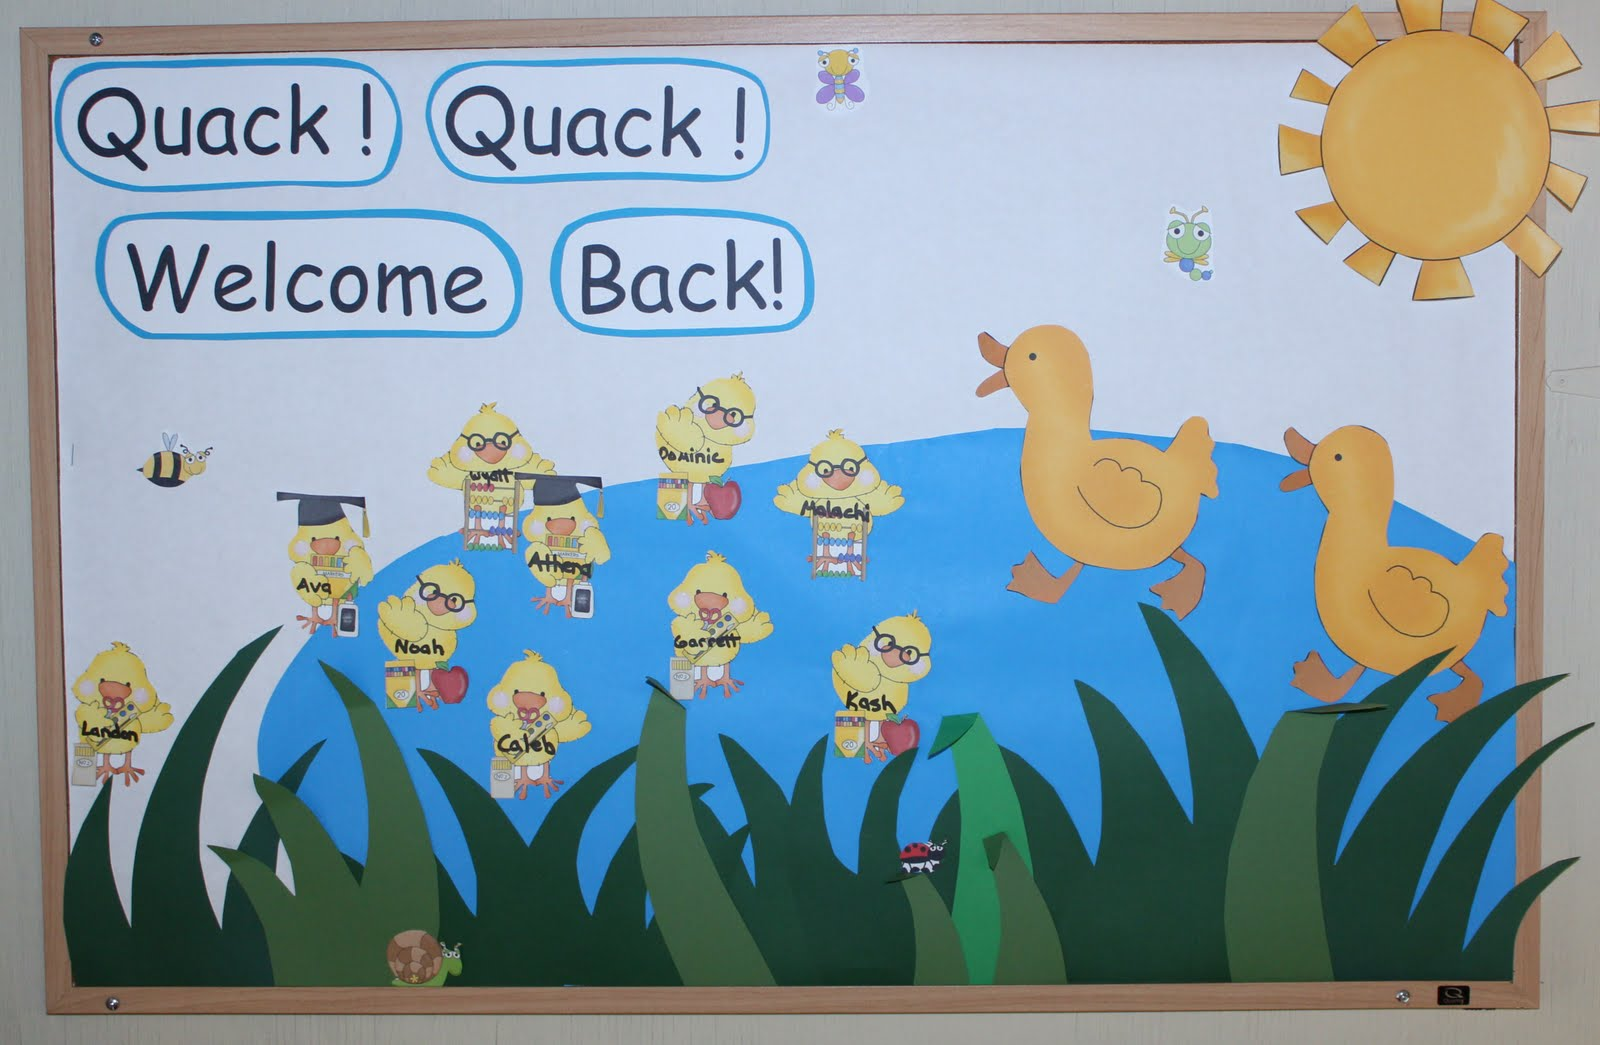 October Bulletin Board Ideas Preschool http://123learnonline.blogspot.com/2011/08/september-bulletin-board-idea.html